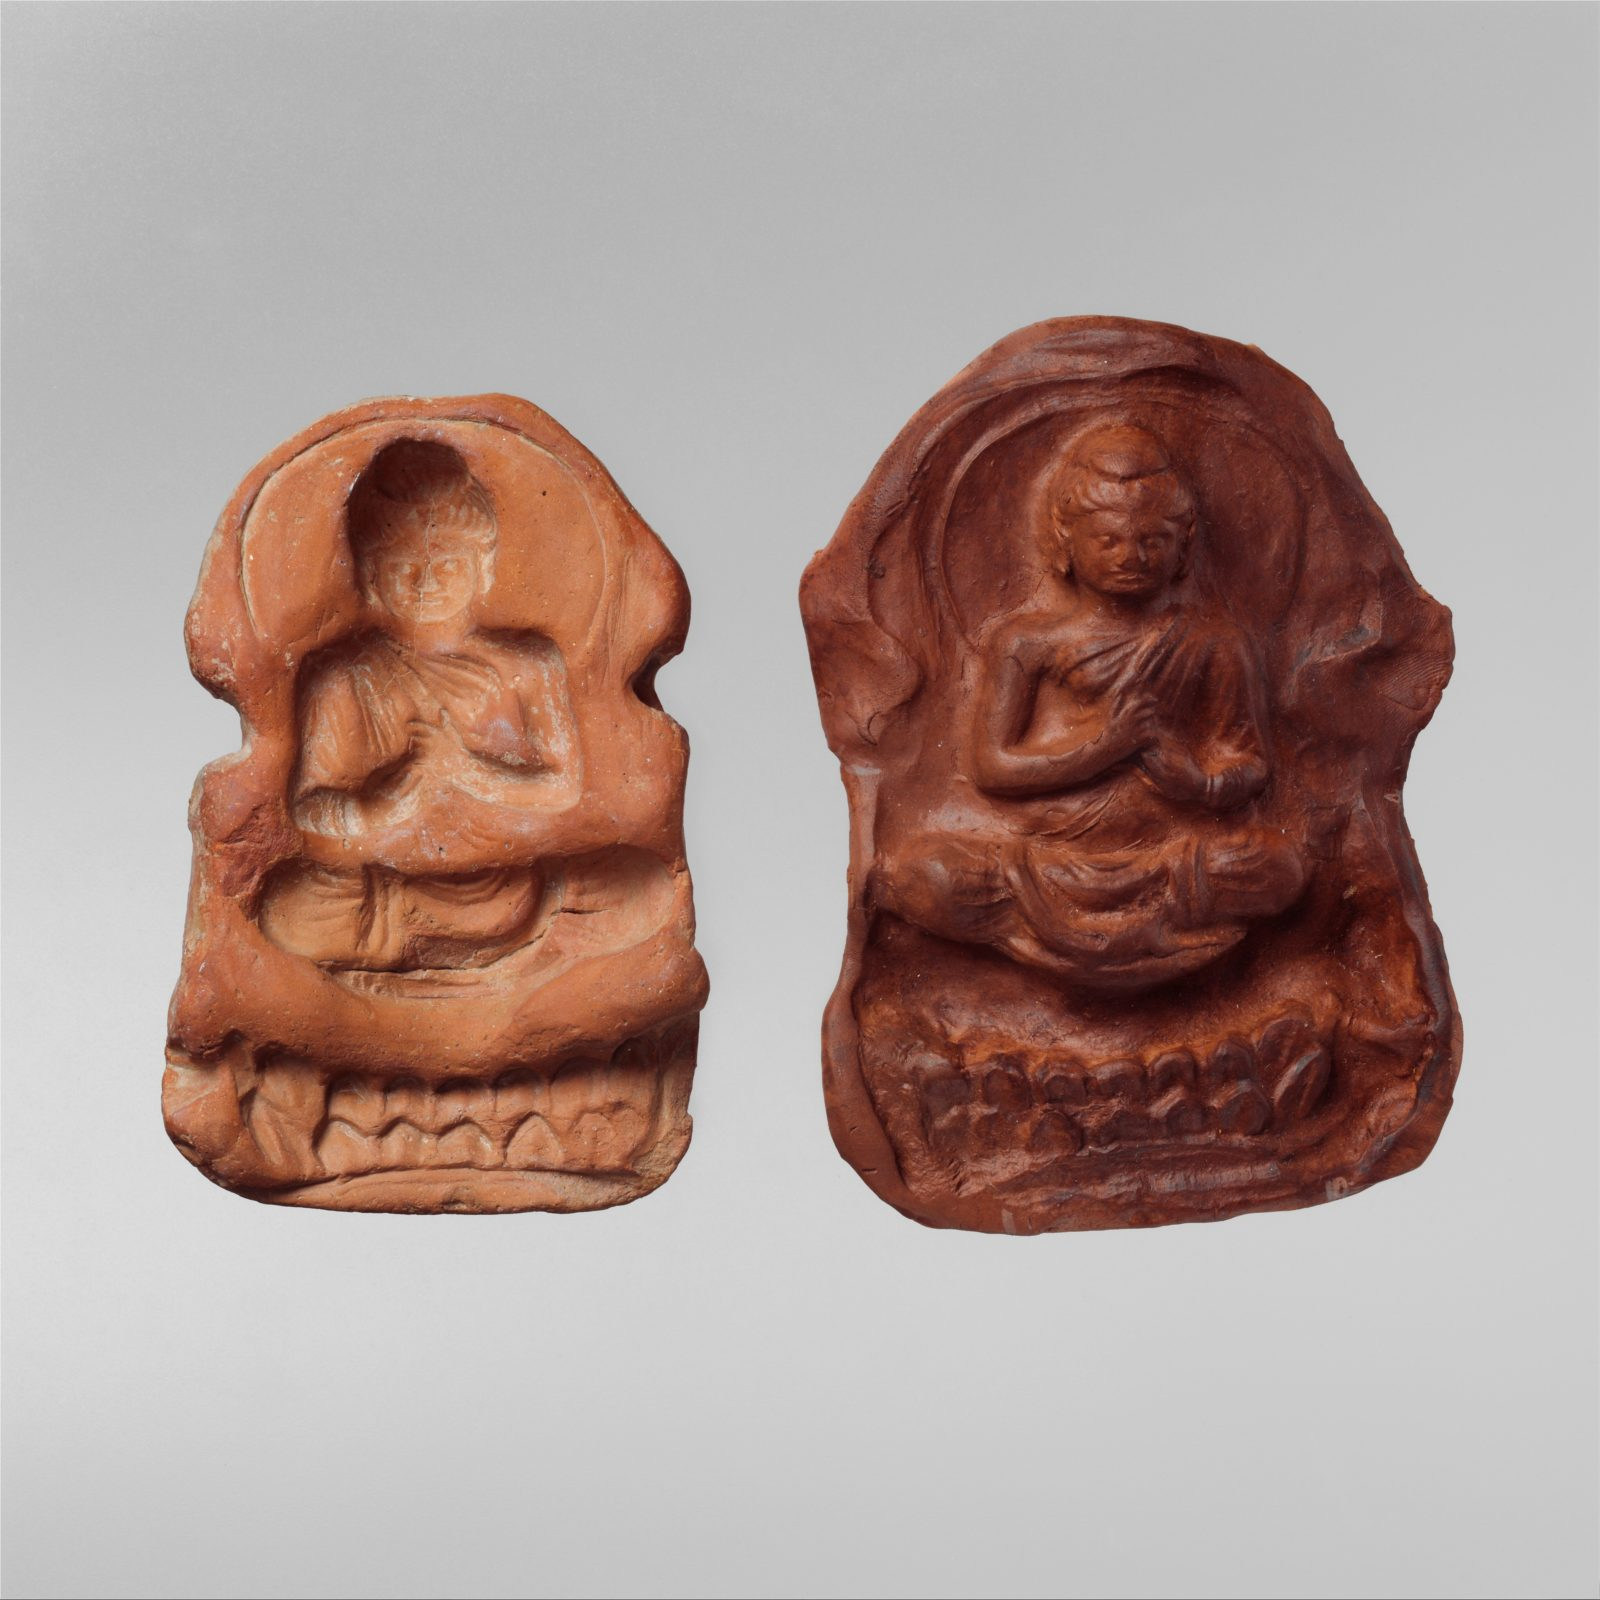 Mold and Impression for a Seated Buddha